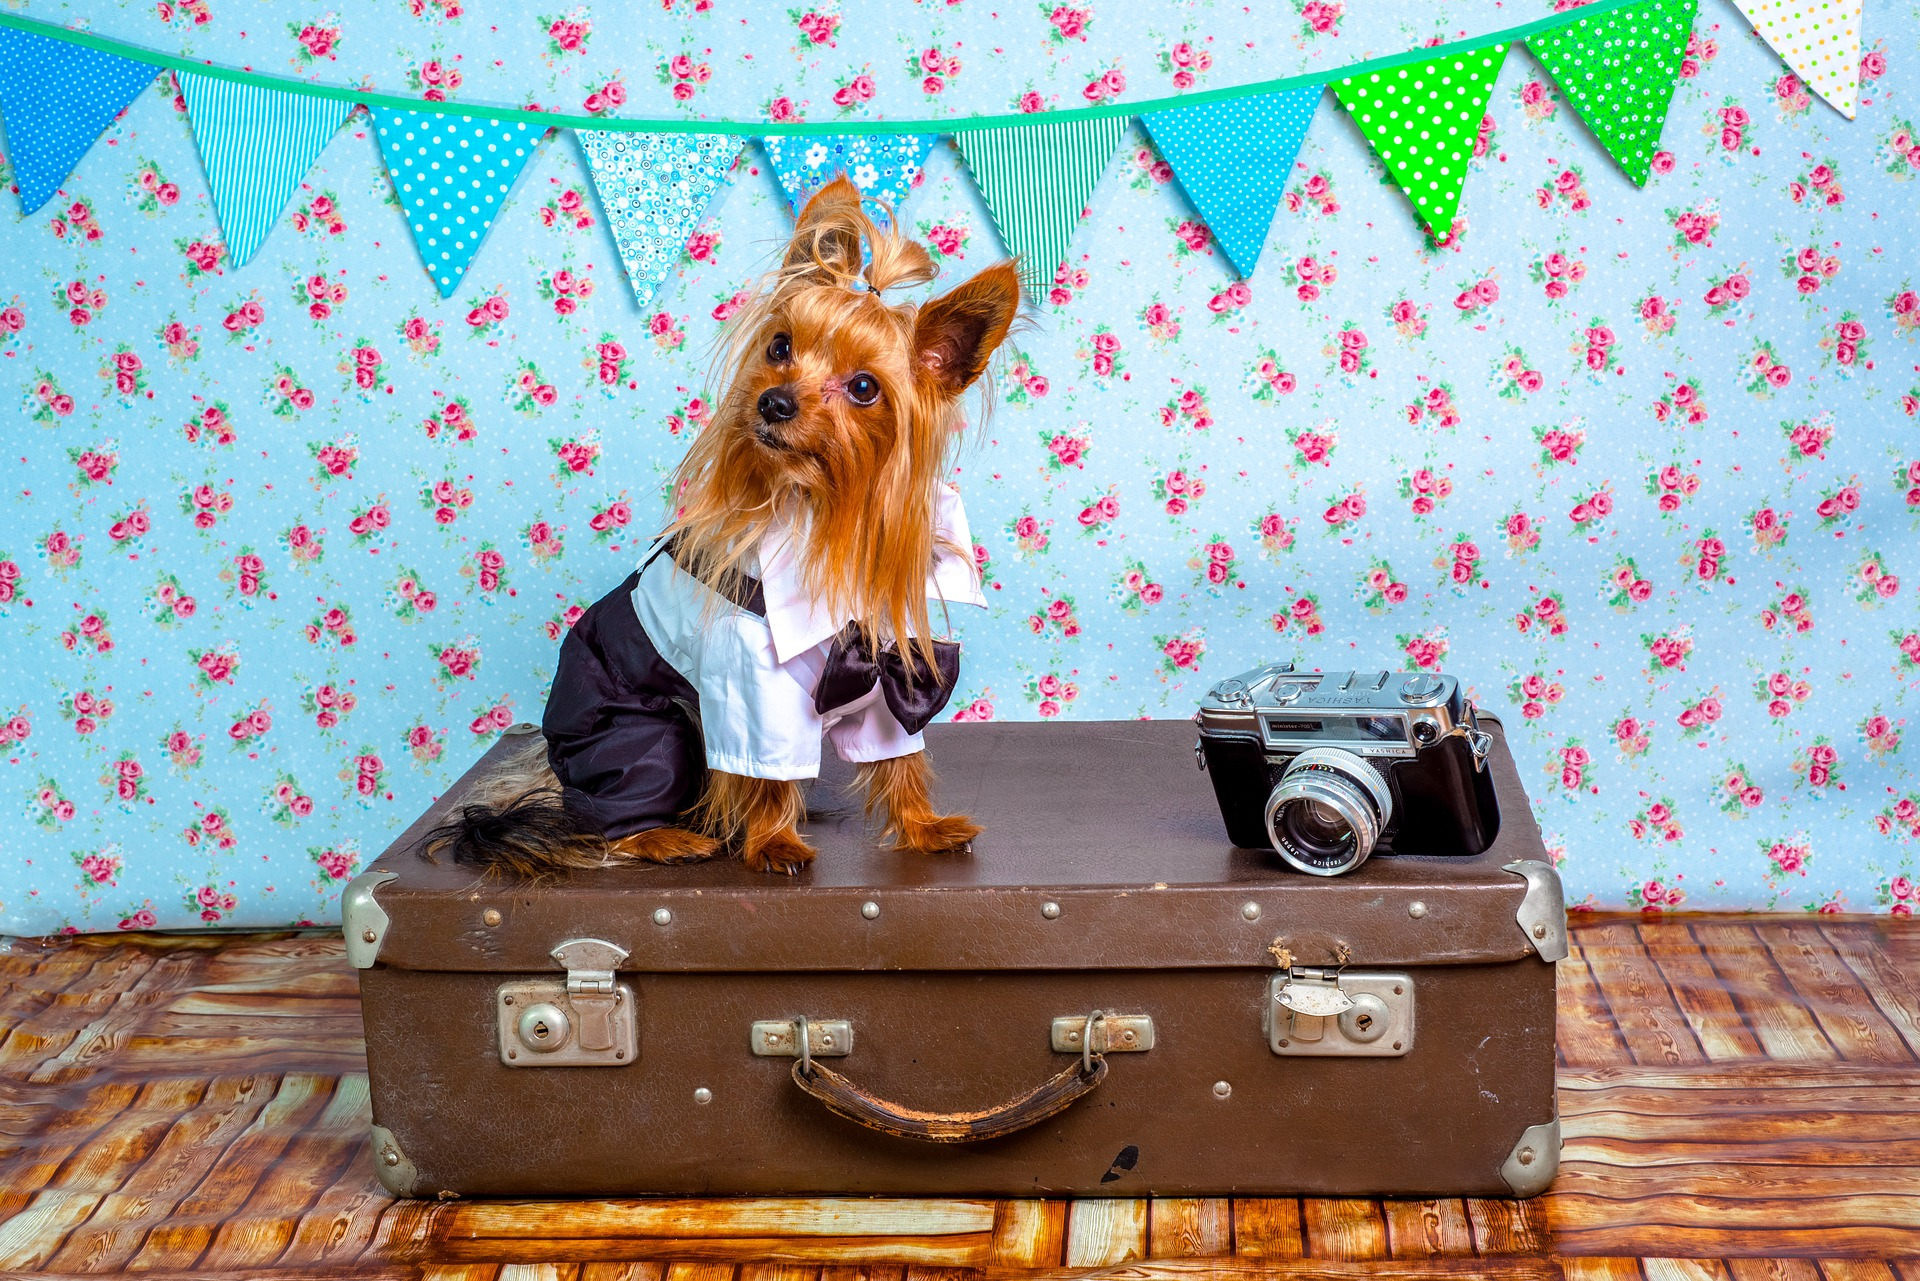 The Ultimate Dog Travel Packing List: Dogs Need a Checklist Too